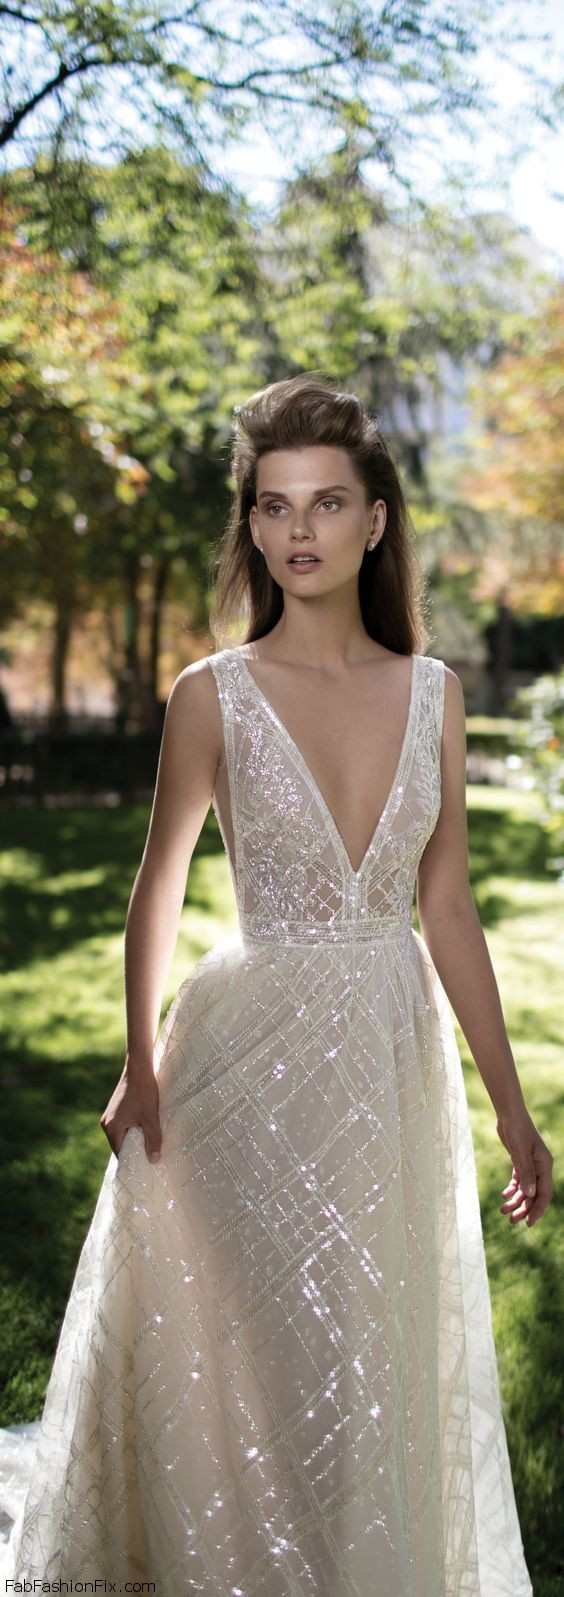 All hail the glamorous Berta Spring 2016 Bridal Collection